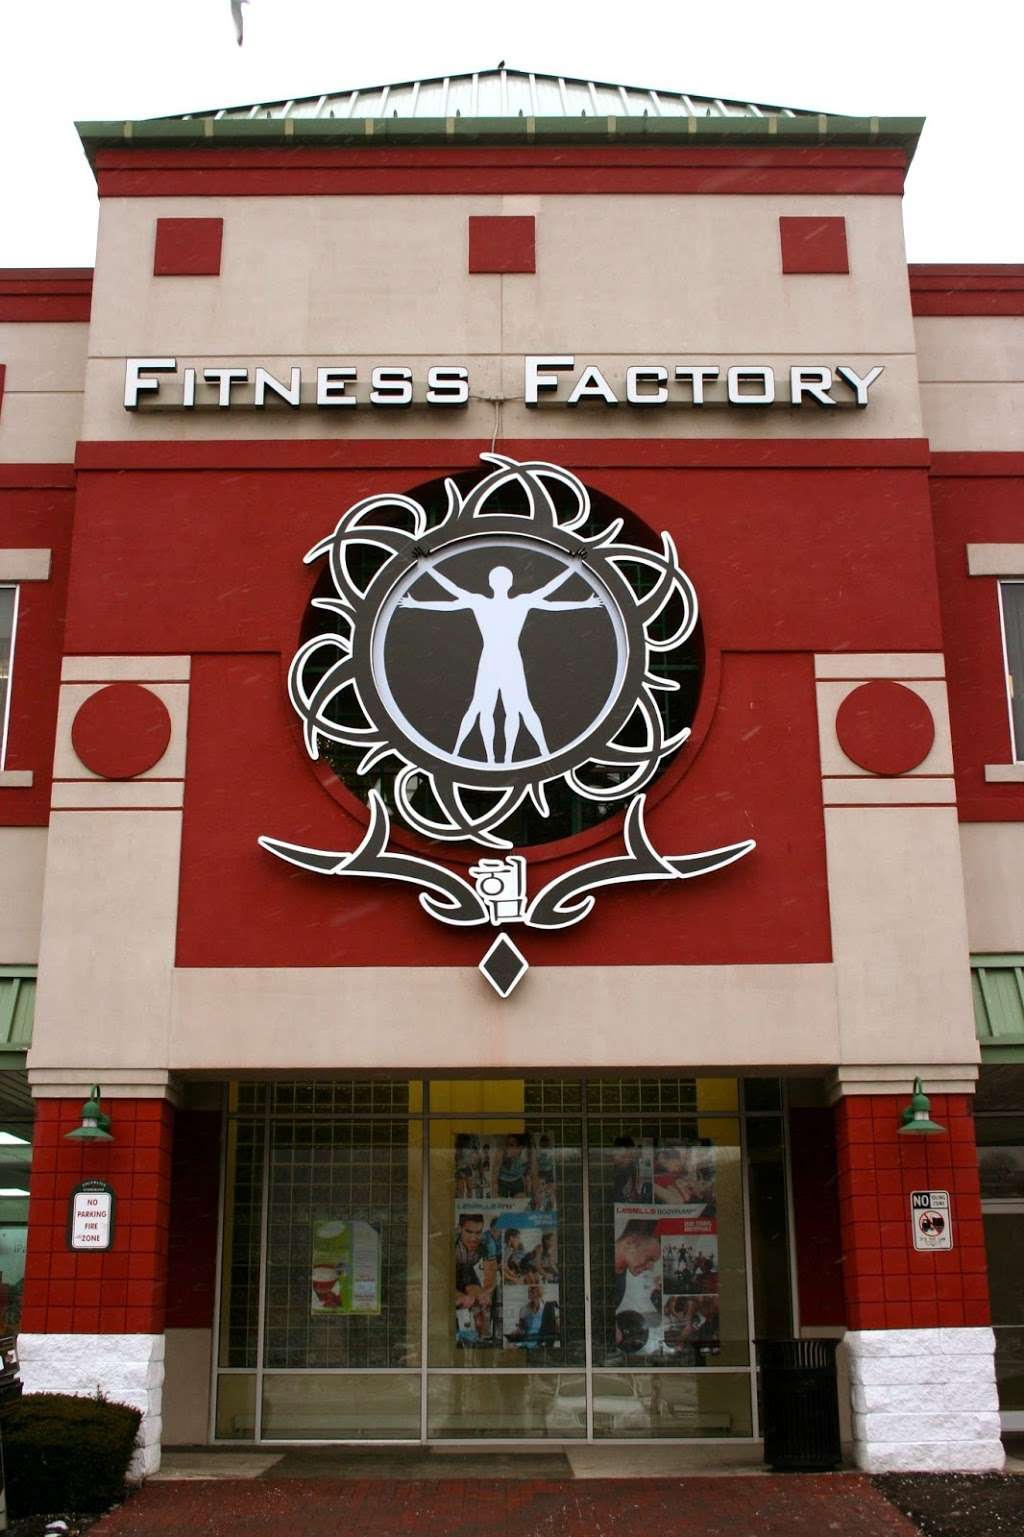 Fitness Factory Health Club - gym | Address: 521 River Rd, Edgewater, NJ 07020, USA | Phone: (201) 945-0900